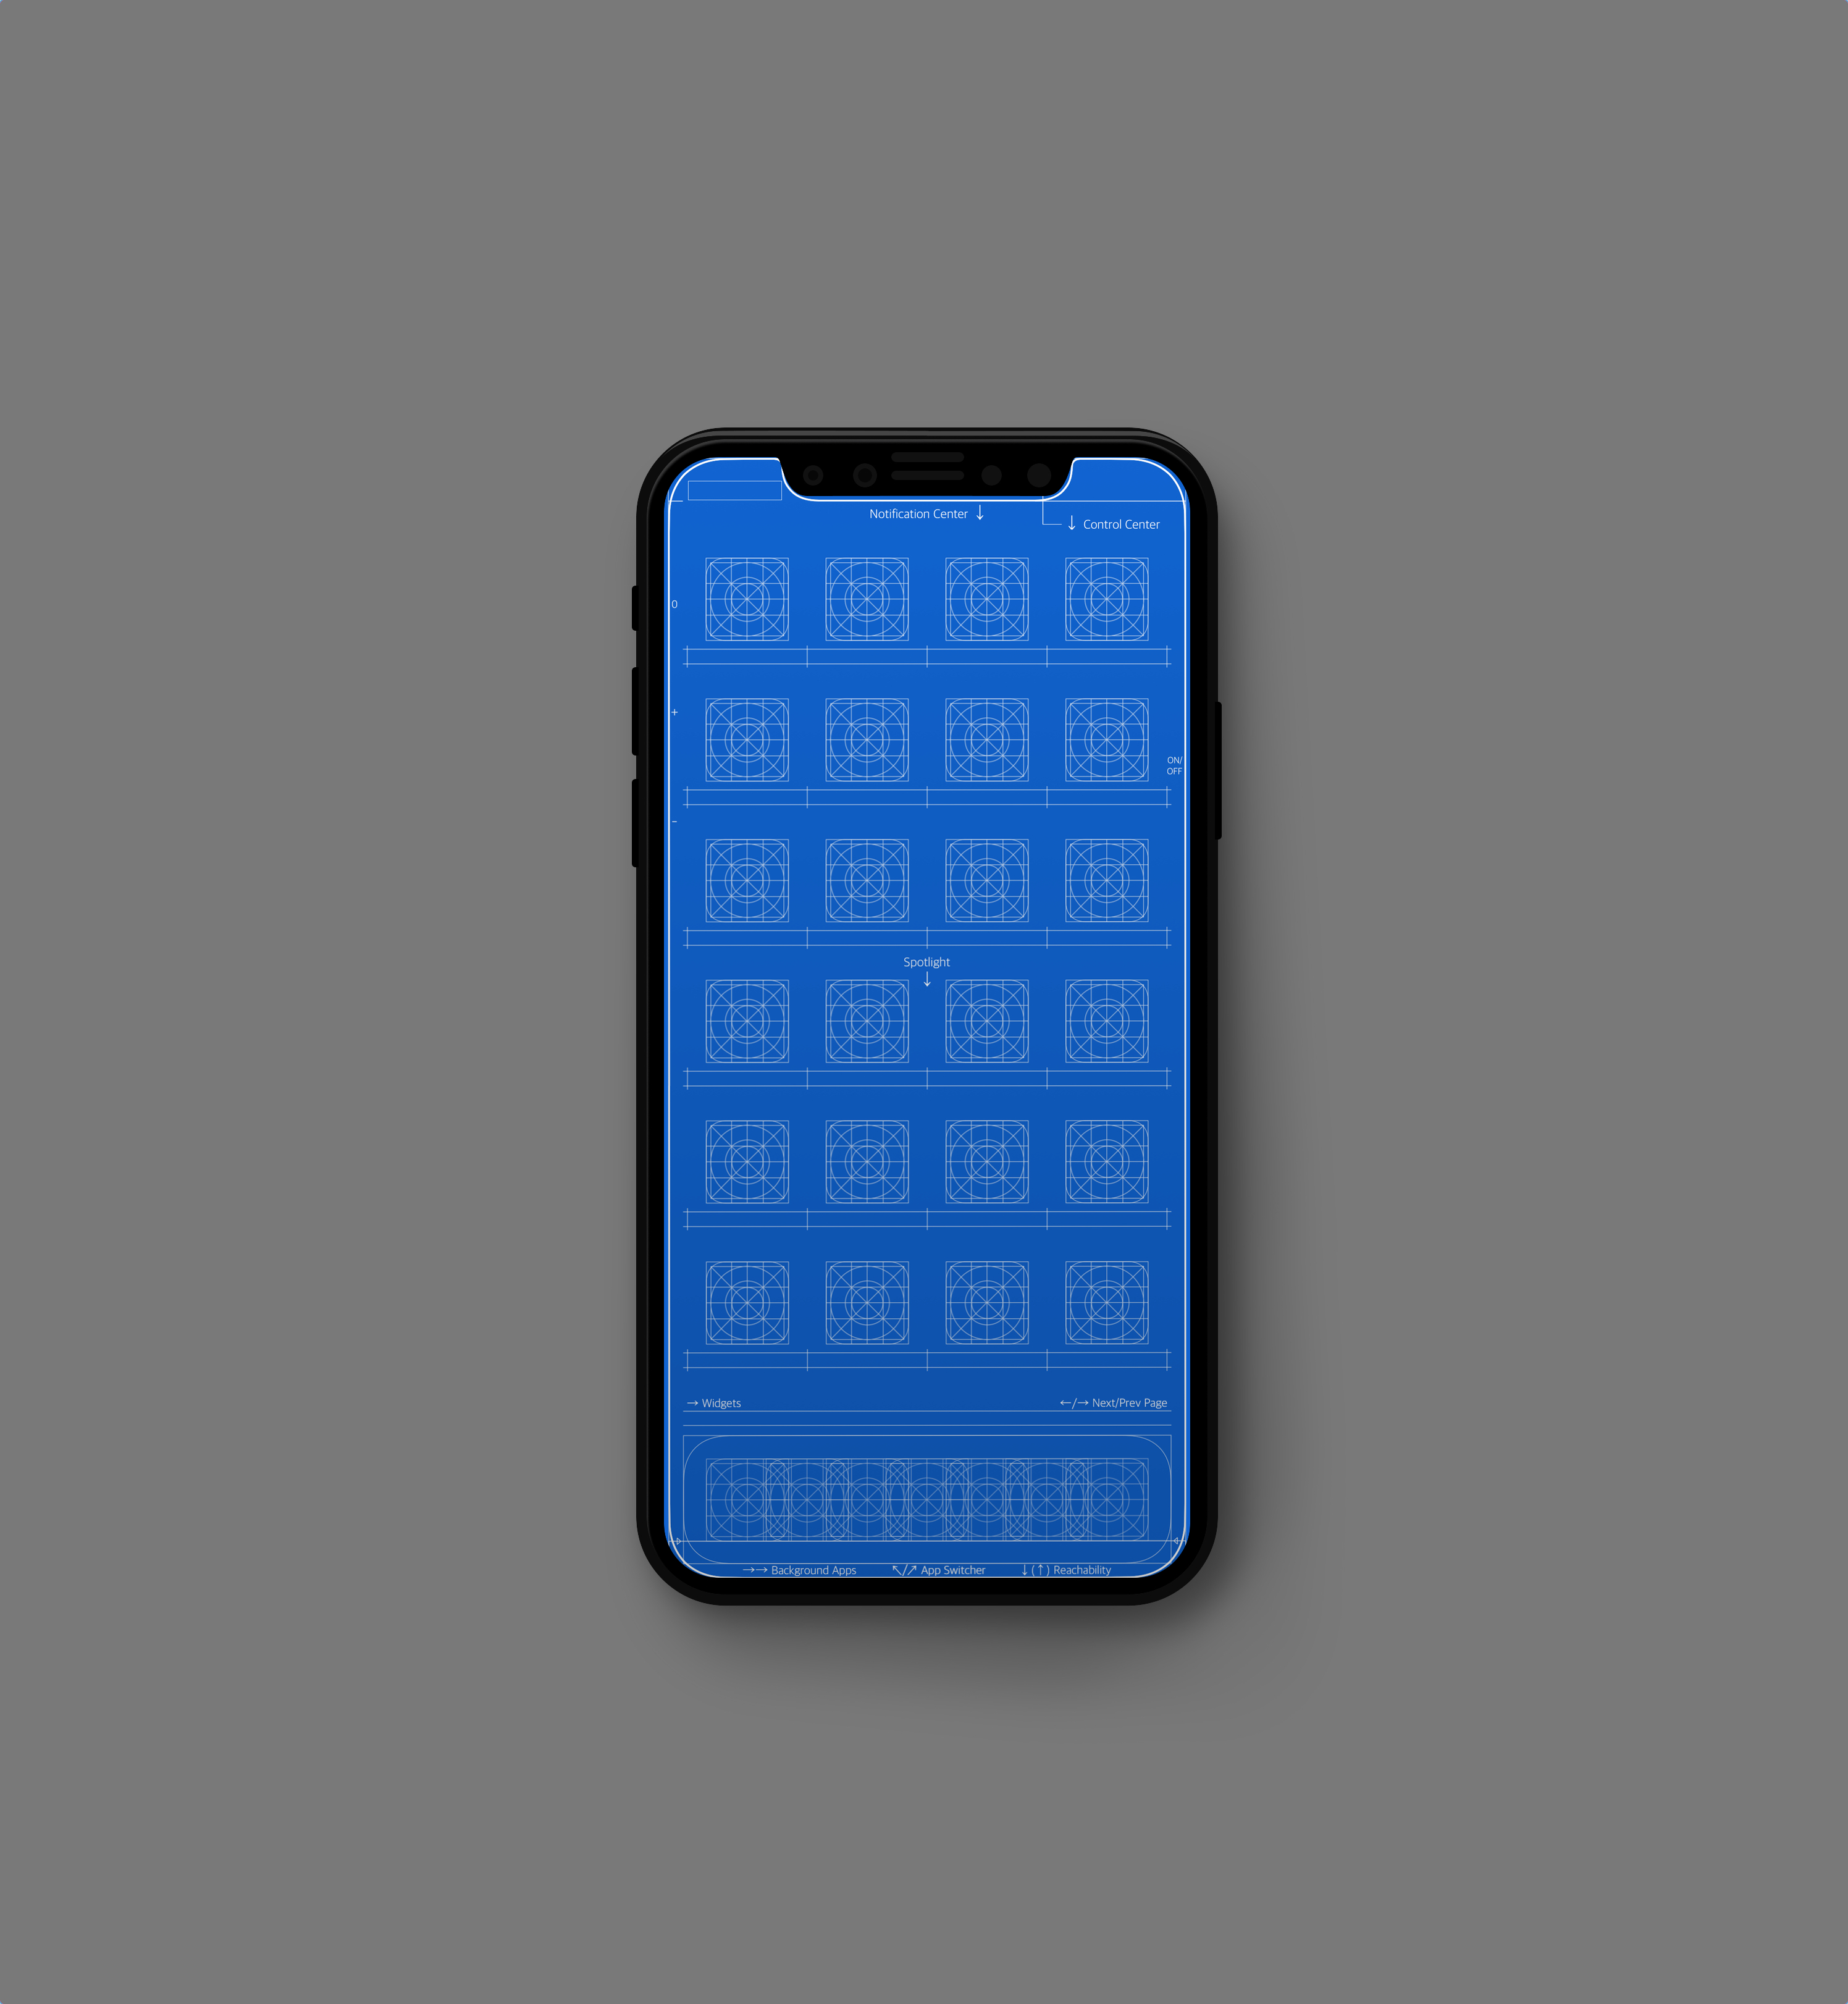 Best Iphone X Wallpaper Grid And Blueprint Wallpapers For Iphone